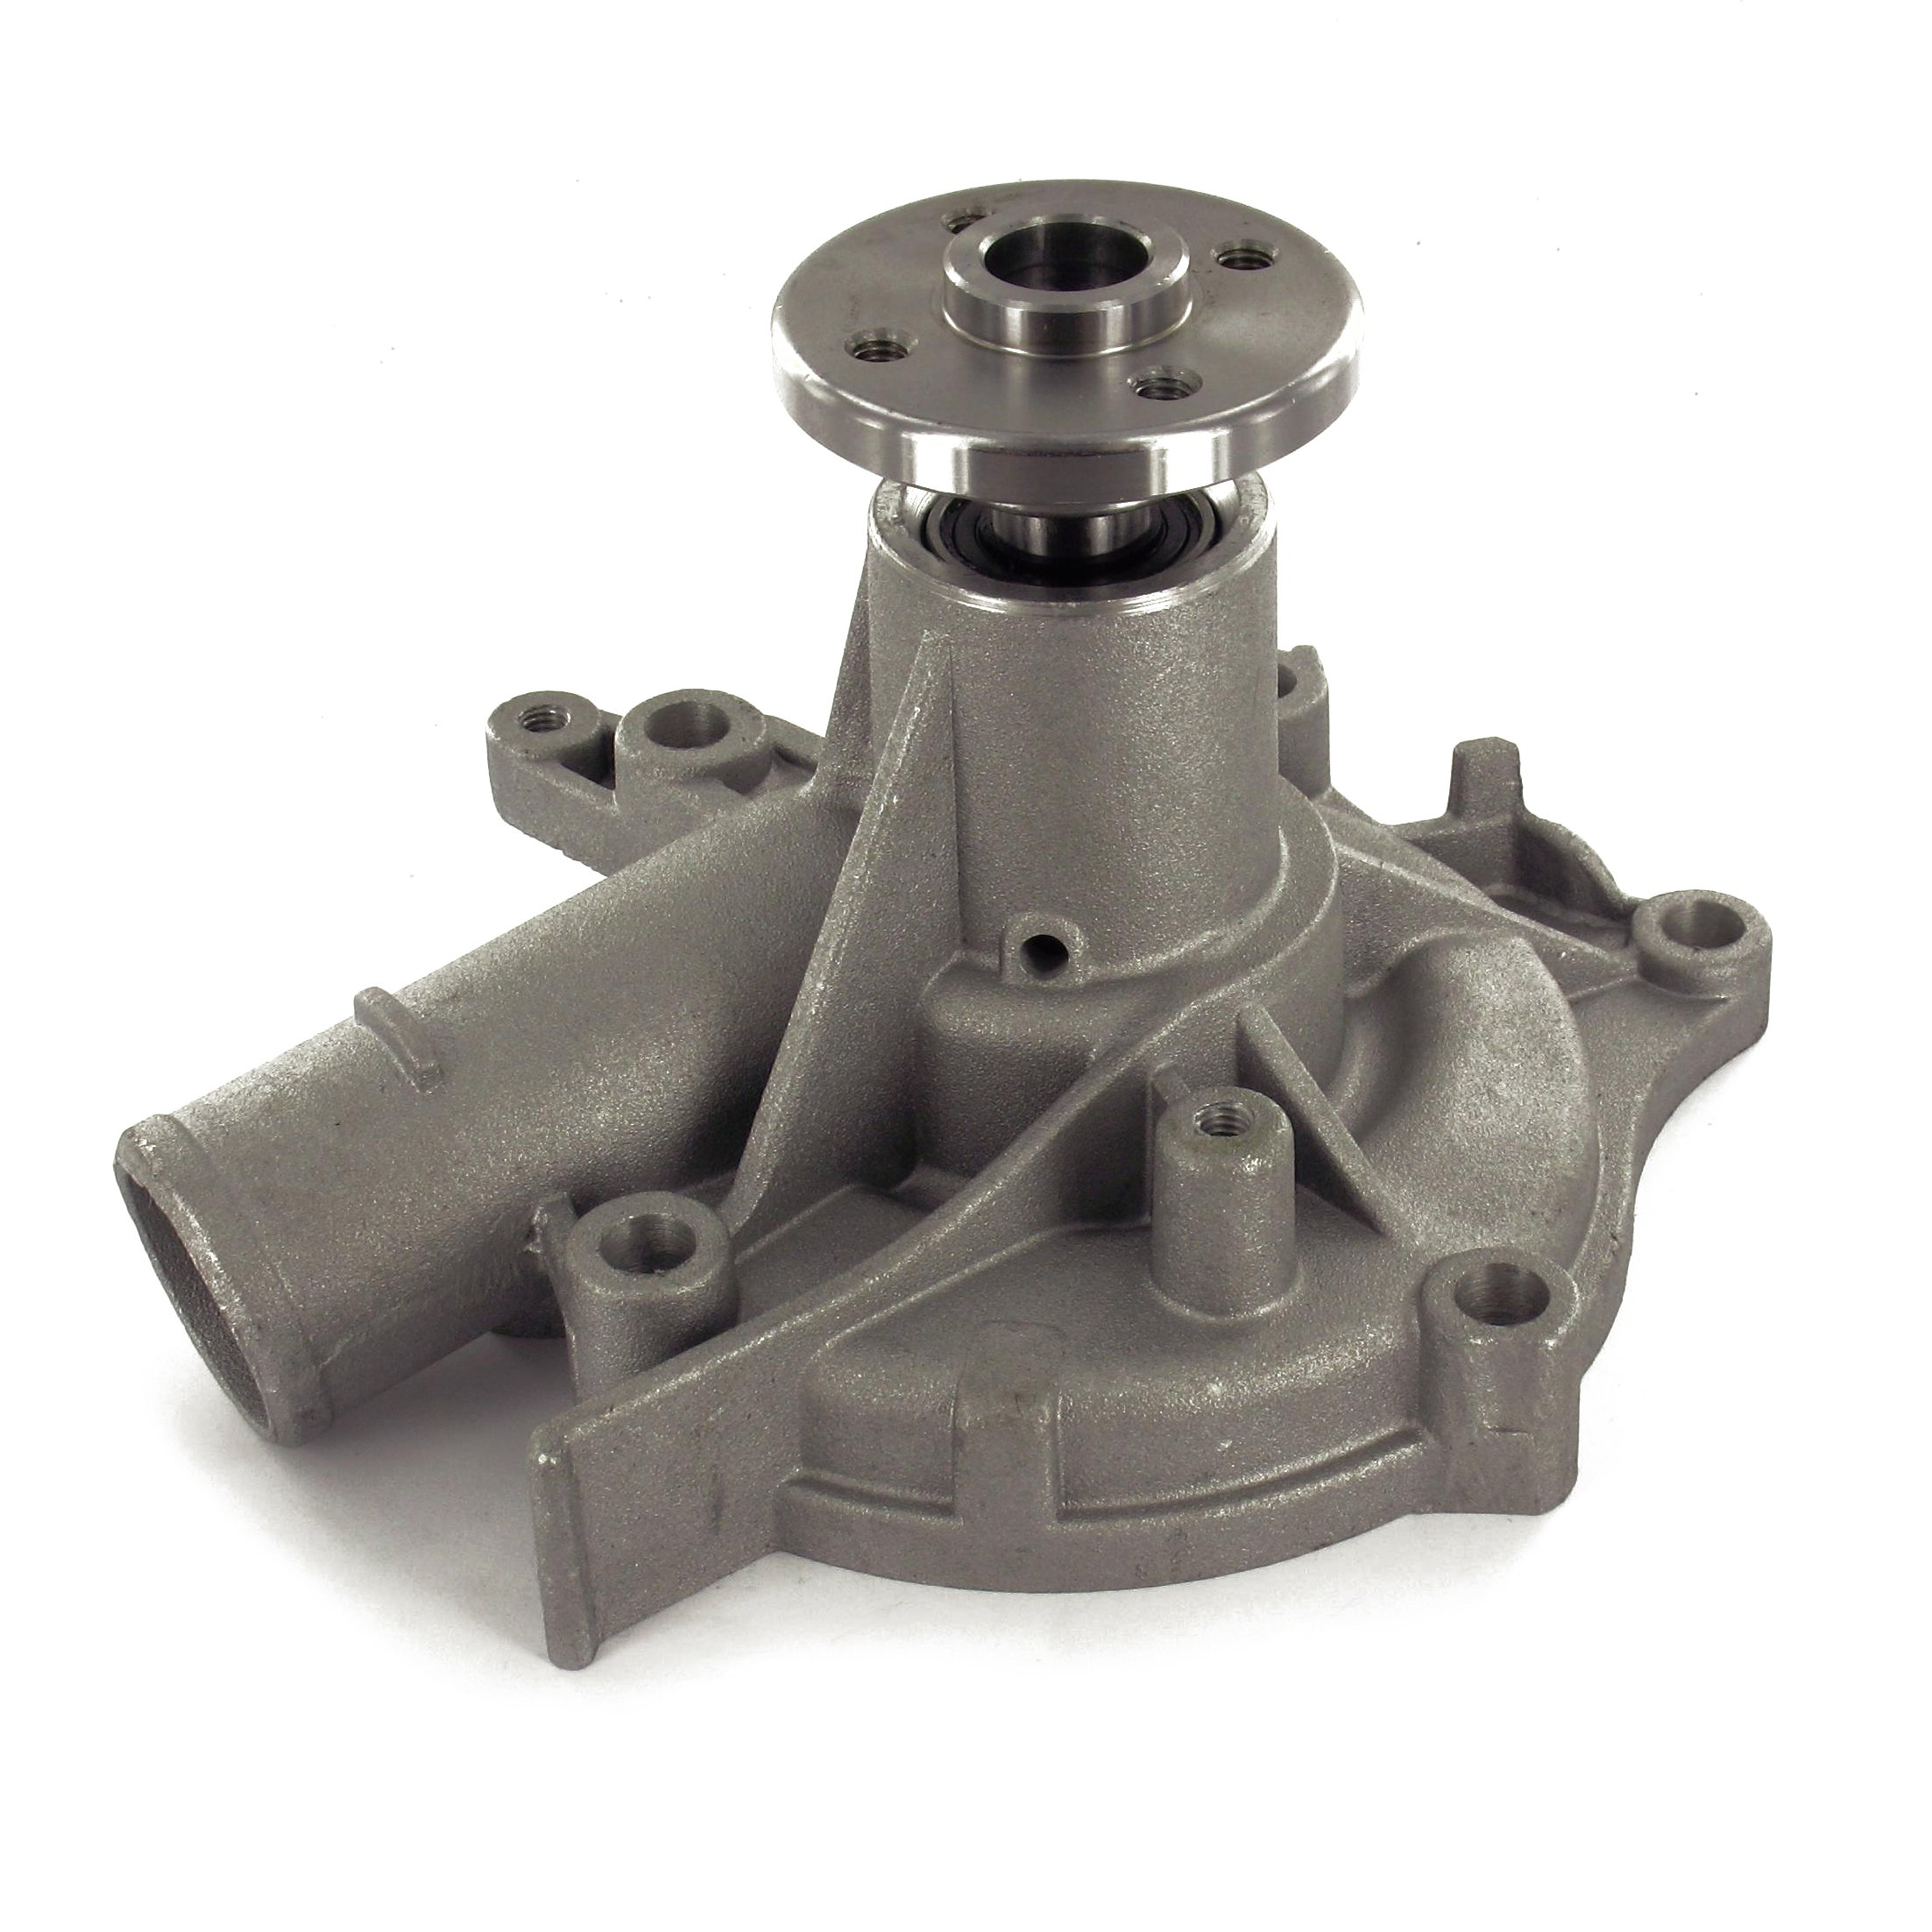 Mitsubishi MD972457 Forklift Water Pump, For 4G63 and 4G64 Engine